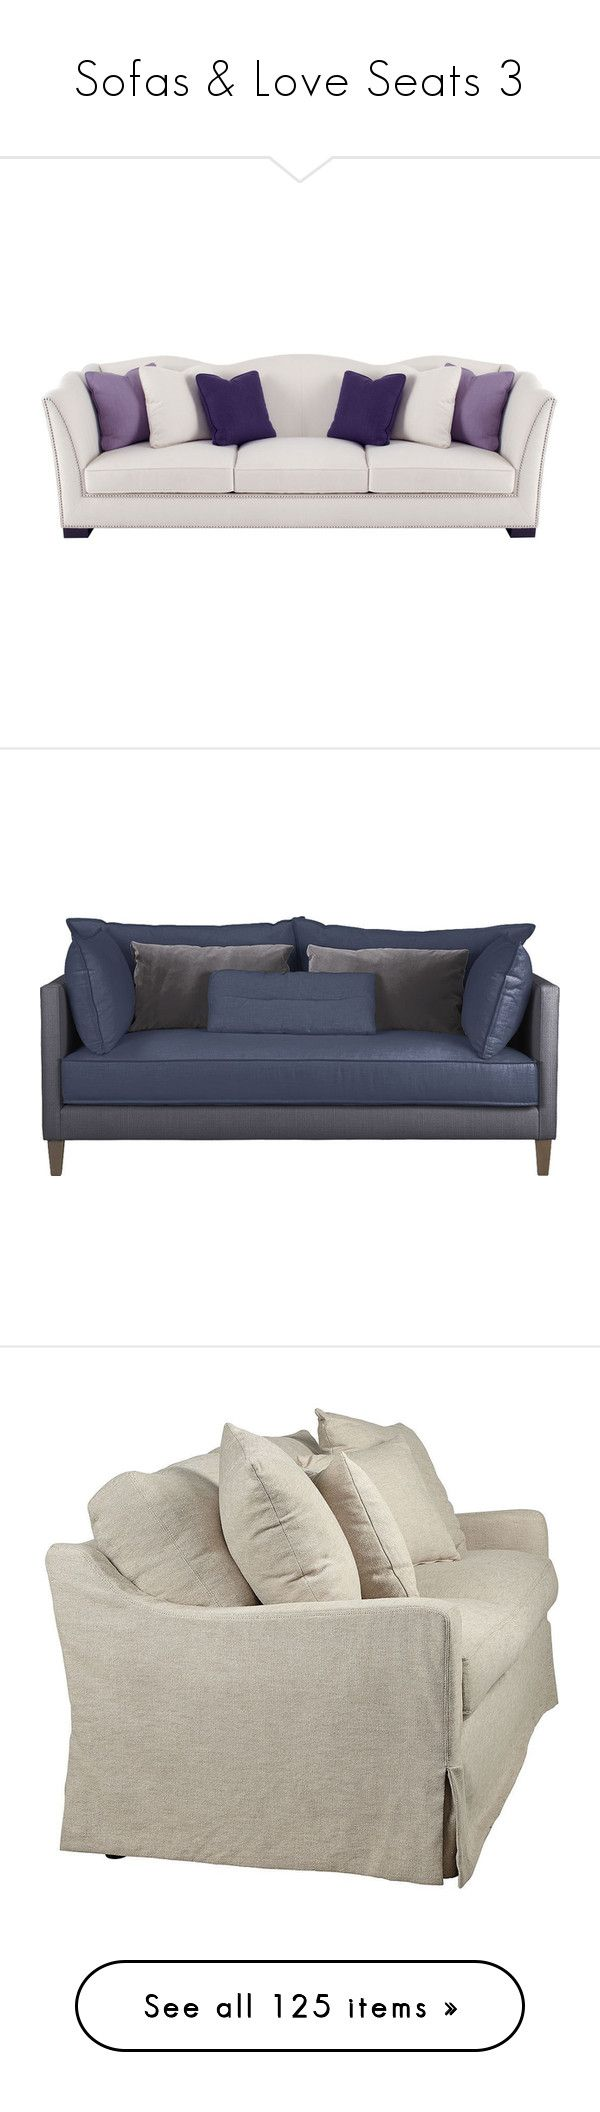 Bernhardt van gogh 2 piece leather sectional ebay -  Sofas Love Seats 3 By Mysfytdesigns Liked On Polyvore Featuring Home